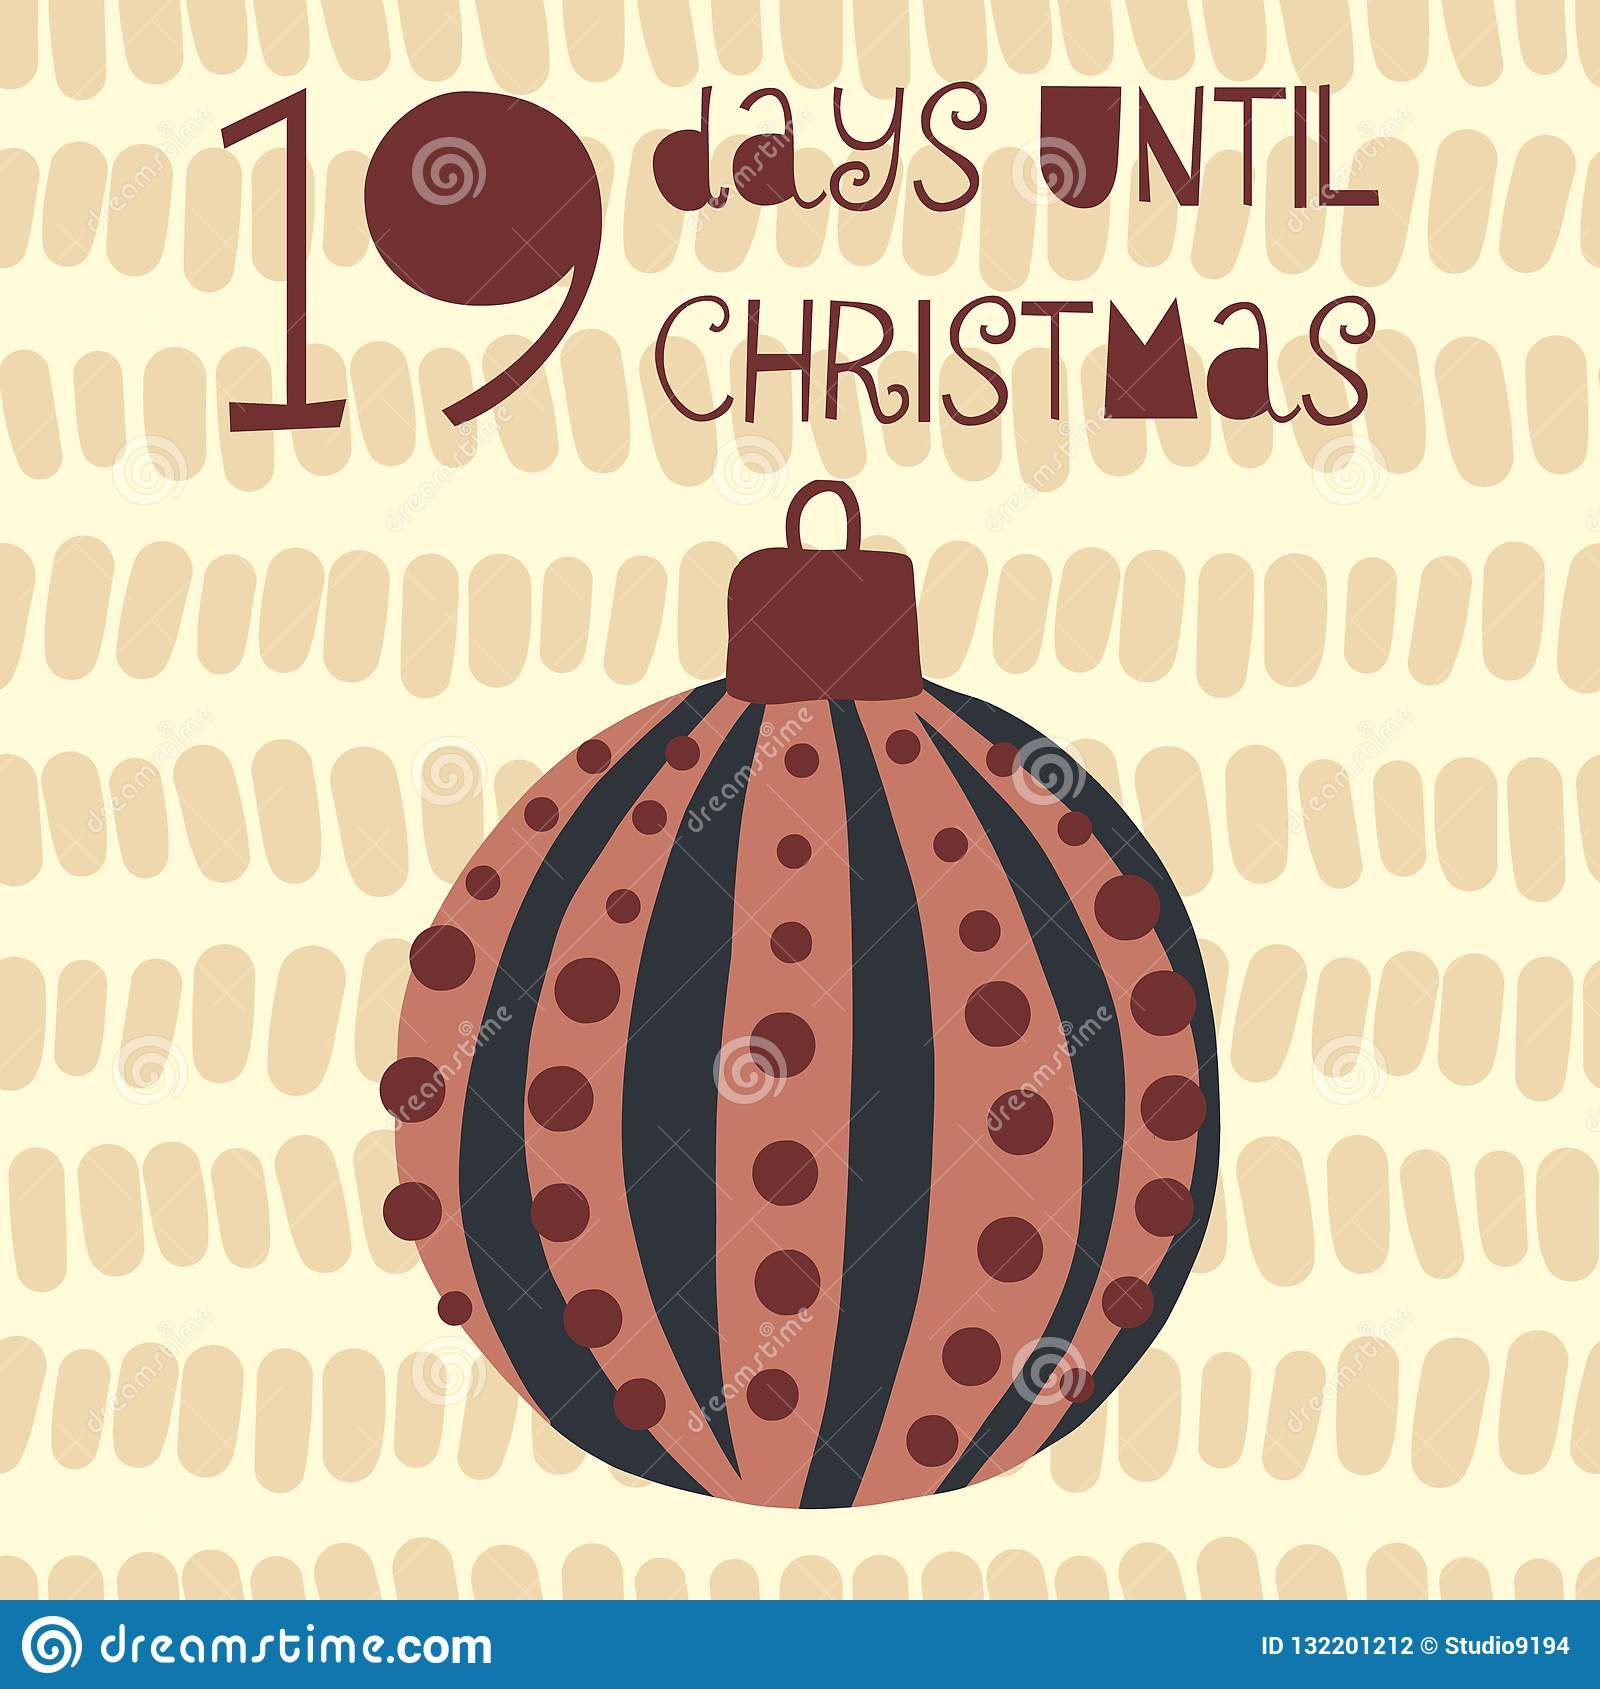 How Many Days Until Christmas Countdown.19 Days Until Christmas Vector Illustration Christmas